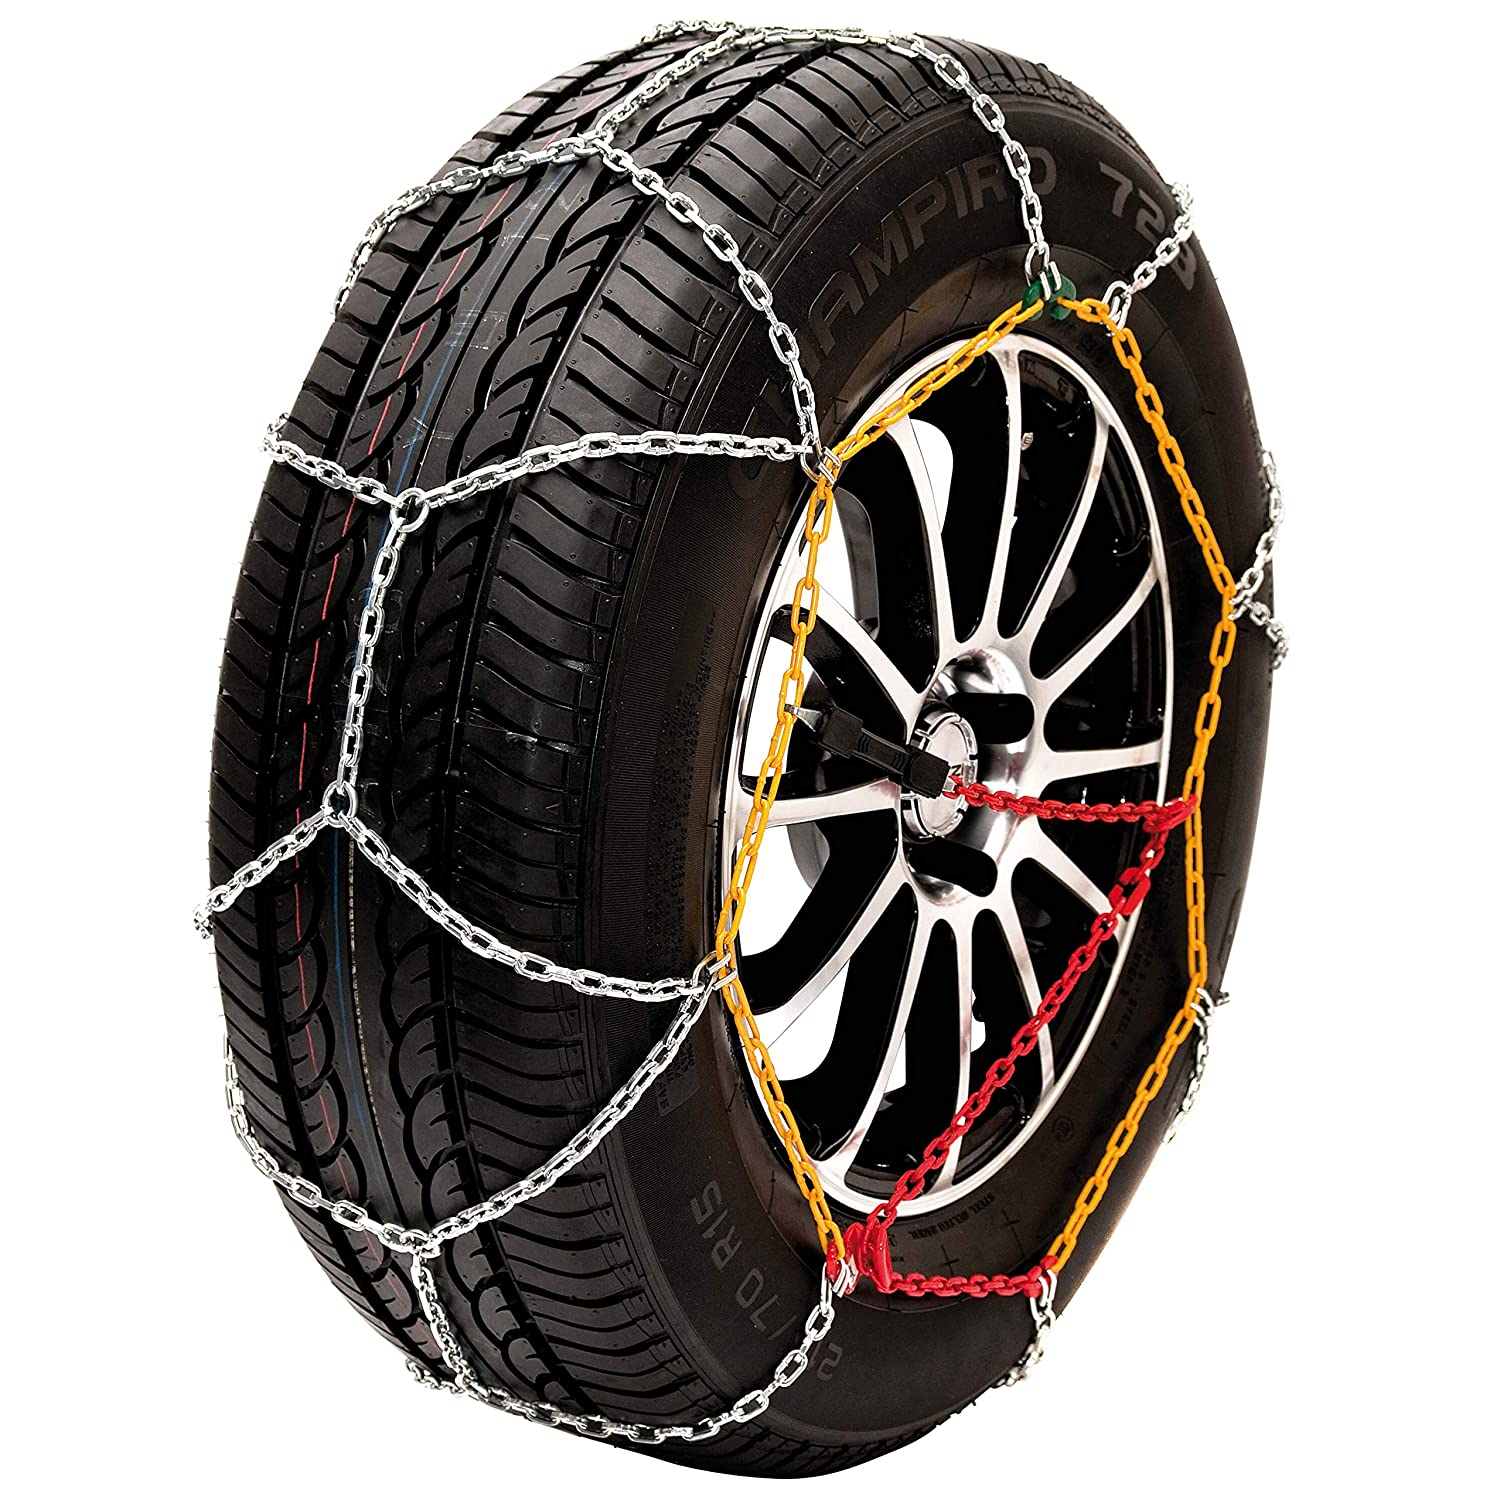 Husky Sumex Winter Classic Alloy Steel Snow Chains for 15' Car Wheel Tyres (185/60 R15)